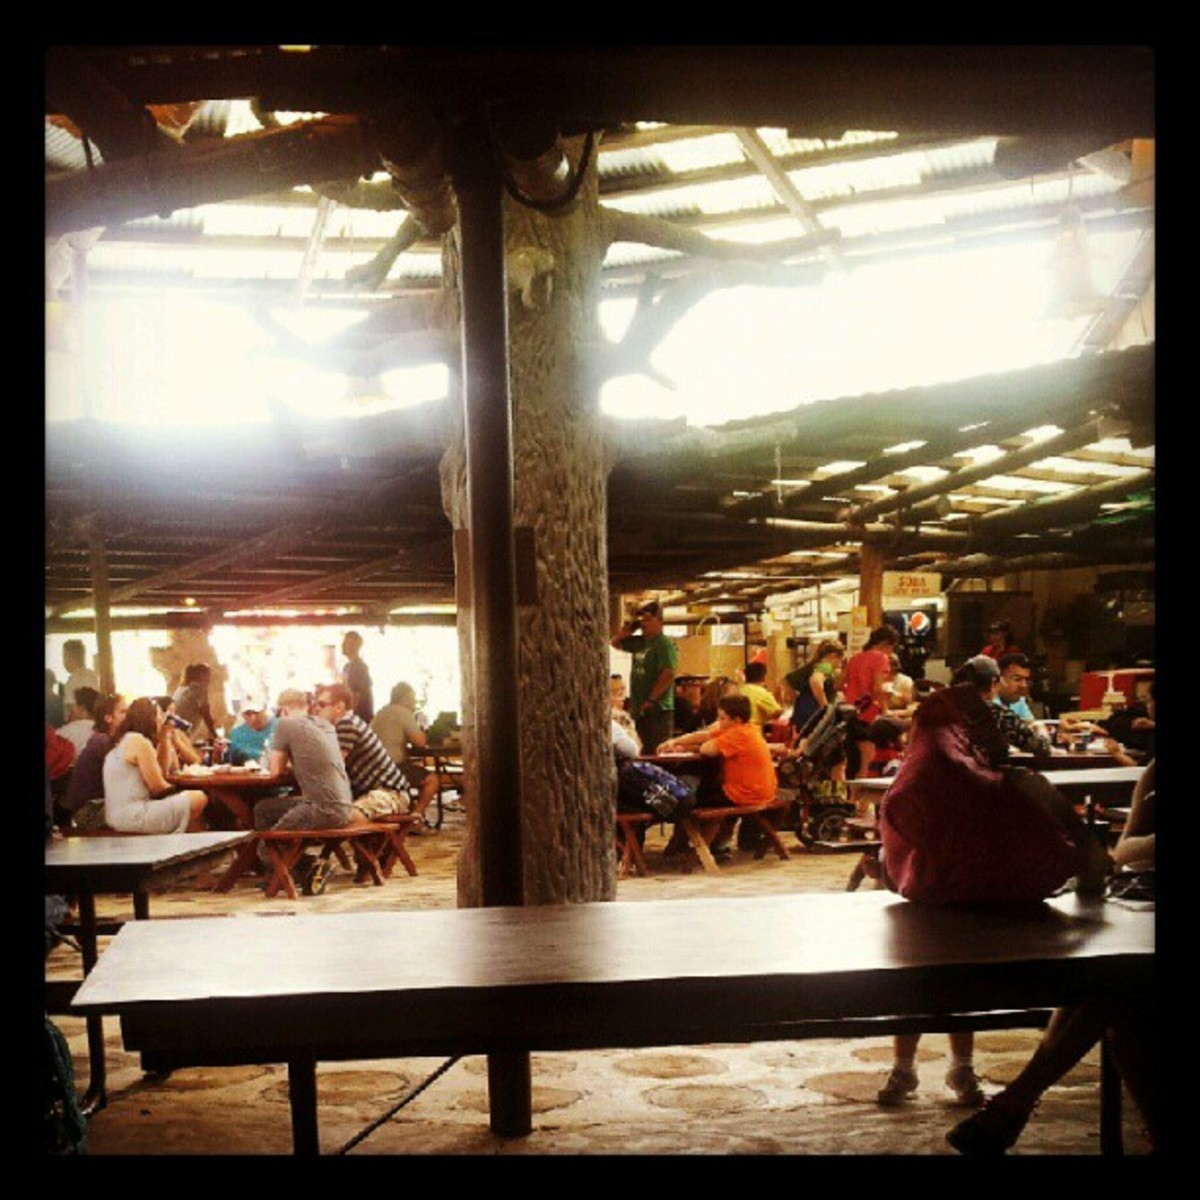 Eating indoors at the Oasis at Knoebels. The only light during the day is natural sunlight coming from the sky lights.